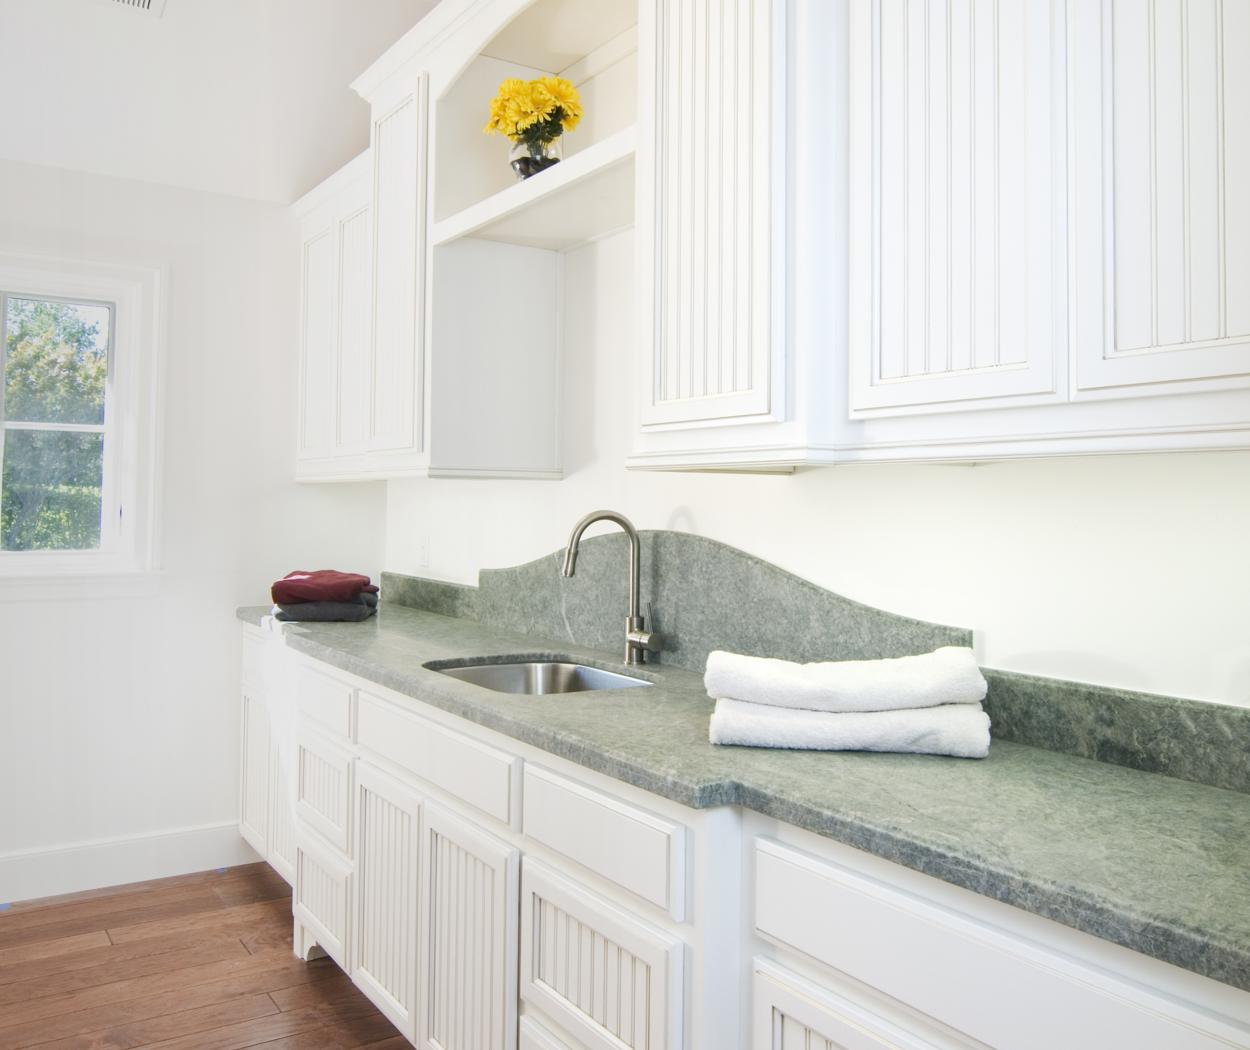 Beautiful White Beadboard Laundry Room Cabinets with an Open Arched Rail and Dark Grey Mixed Countertop